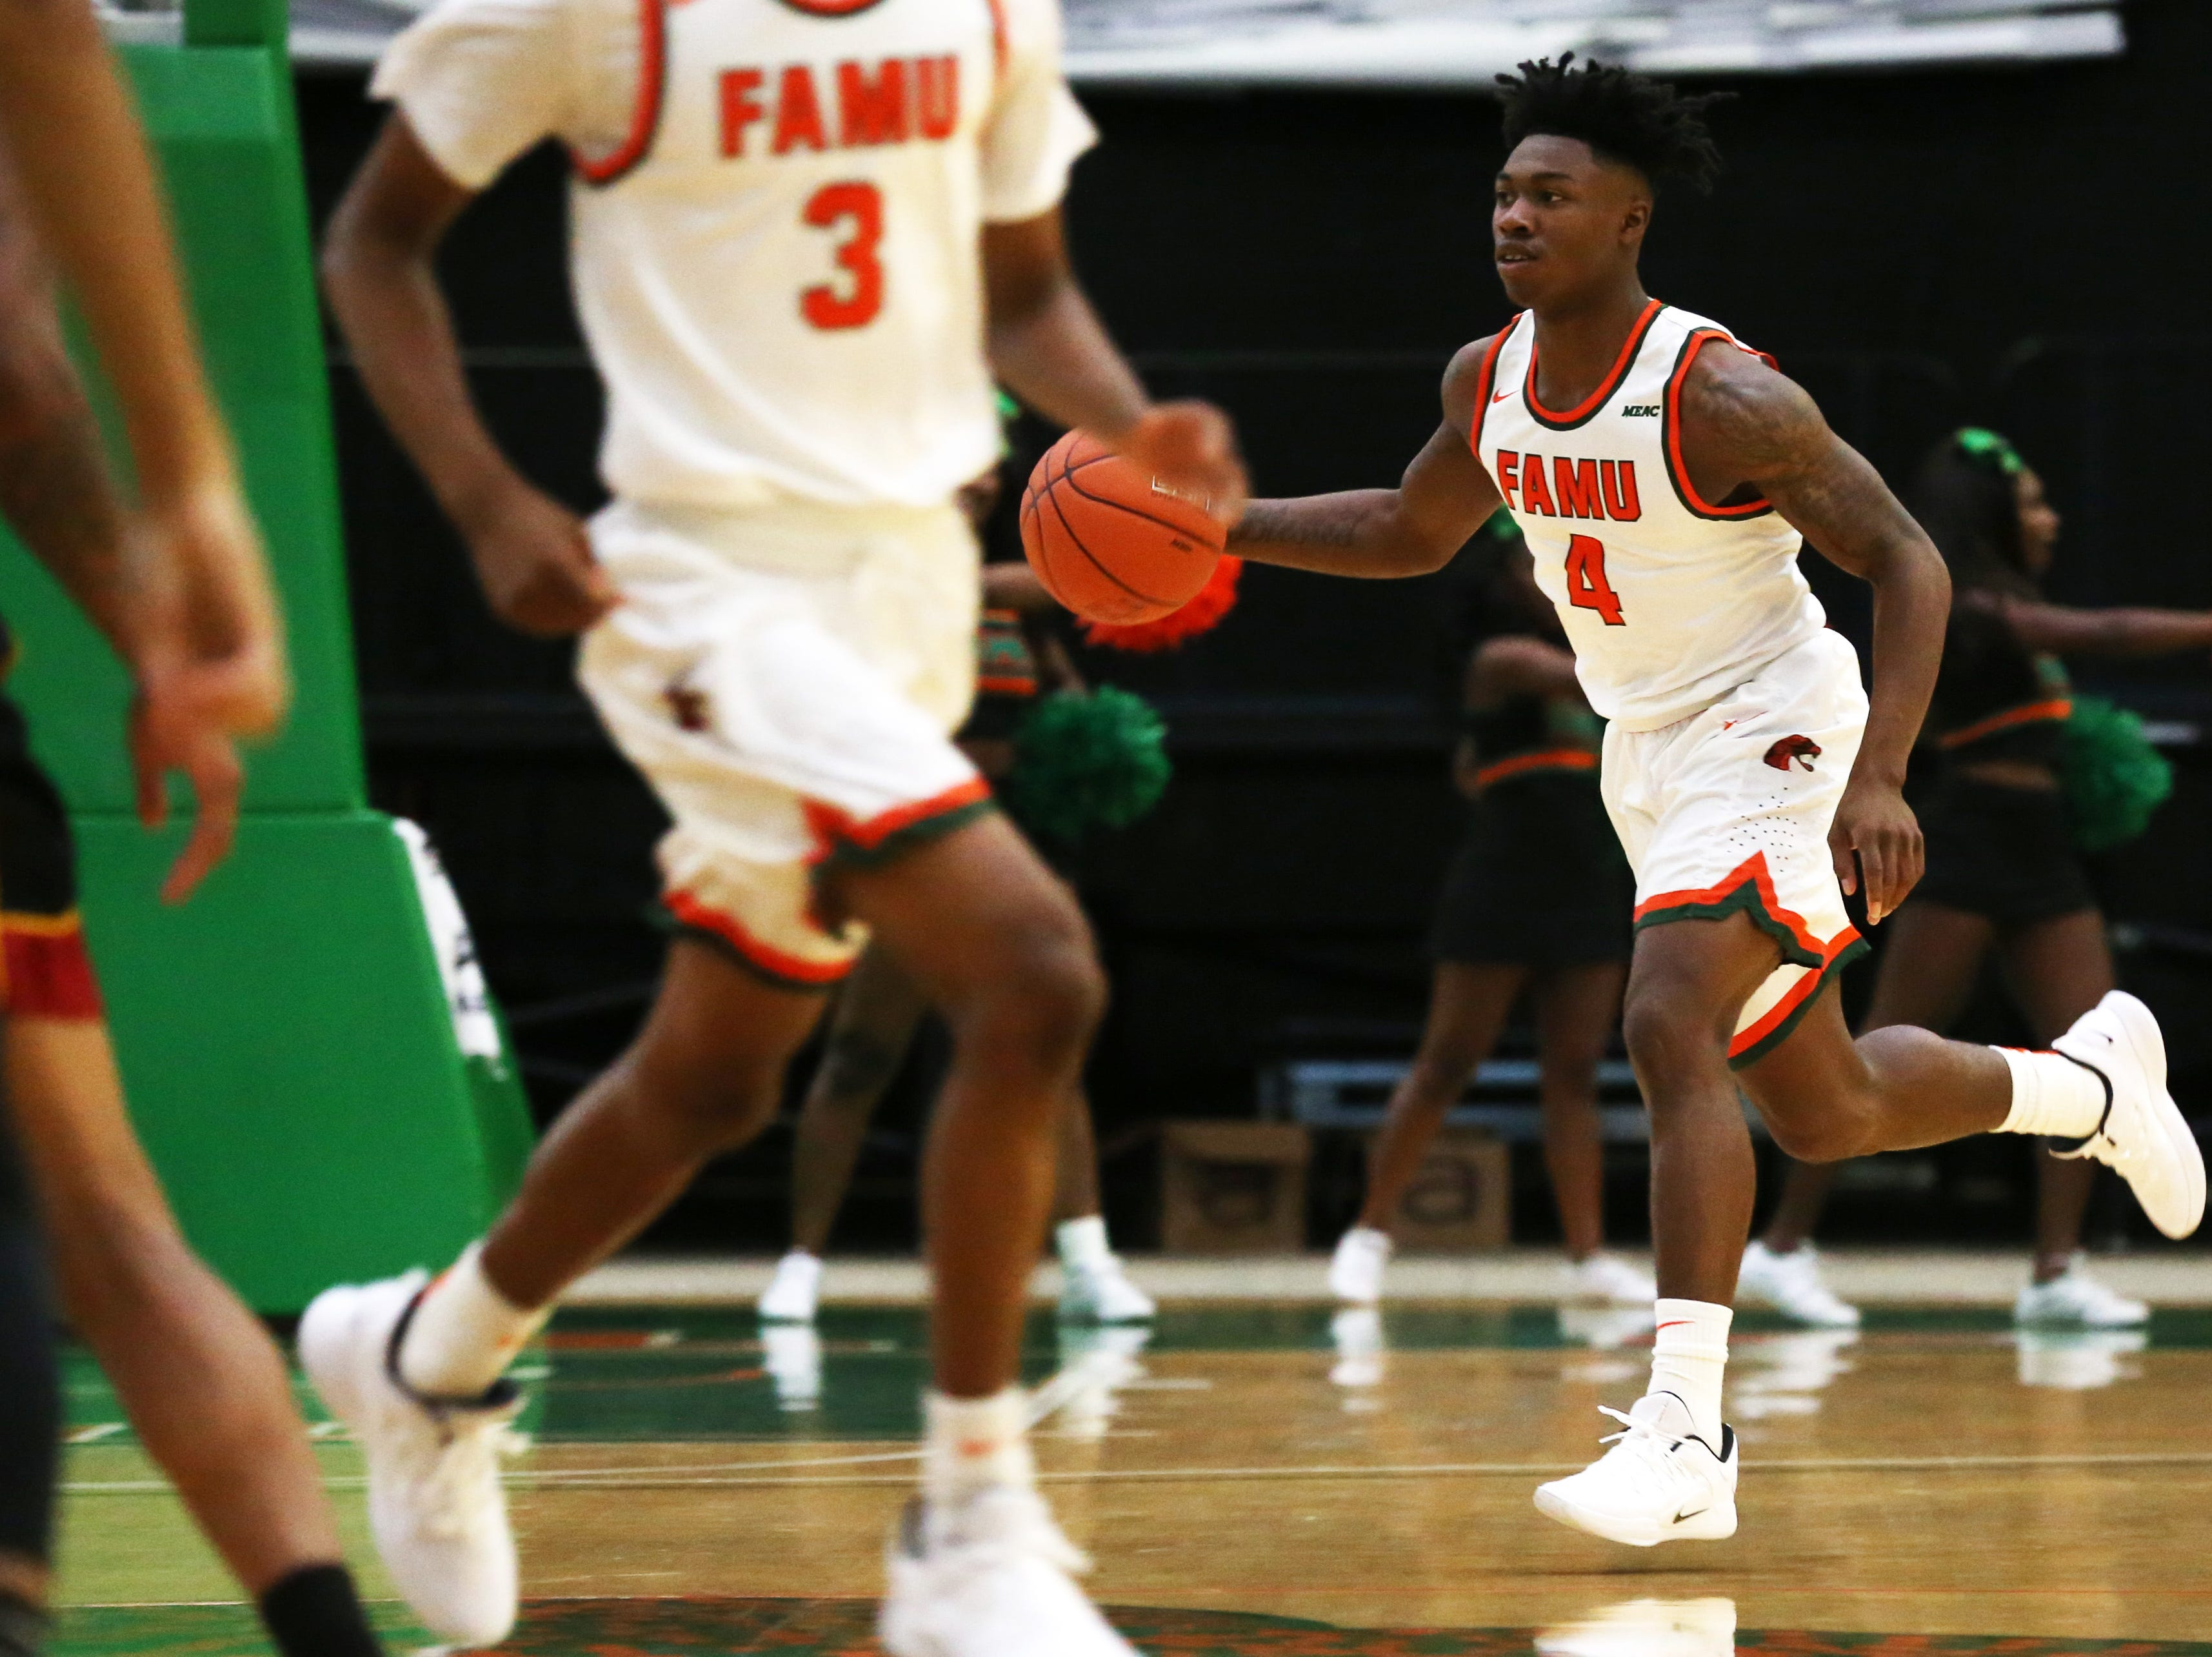 Florida A&M Rattlers guard Rod Melton Jr. (4) drives the ball down the court as the FAMU Rattlers take on the Tuskegee Golden Tigers in their first home game of the season in the Lawson Center, Saturday, Nov. 10, 2018.